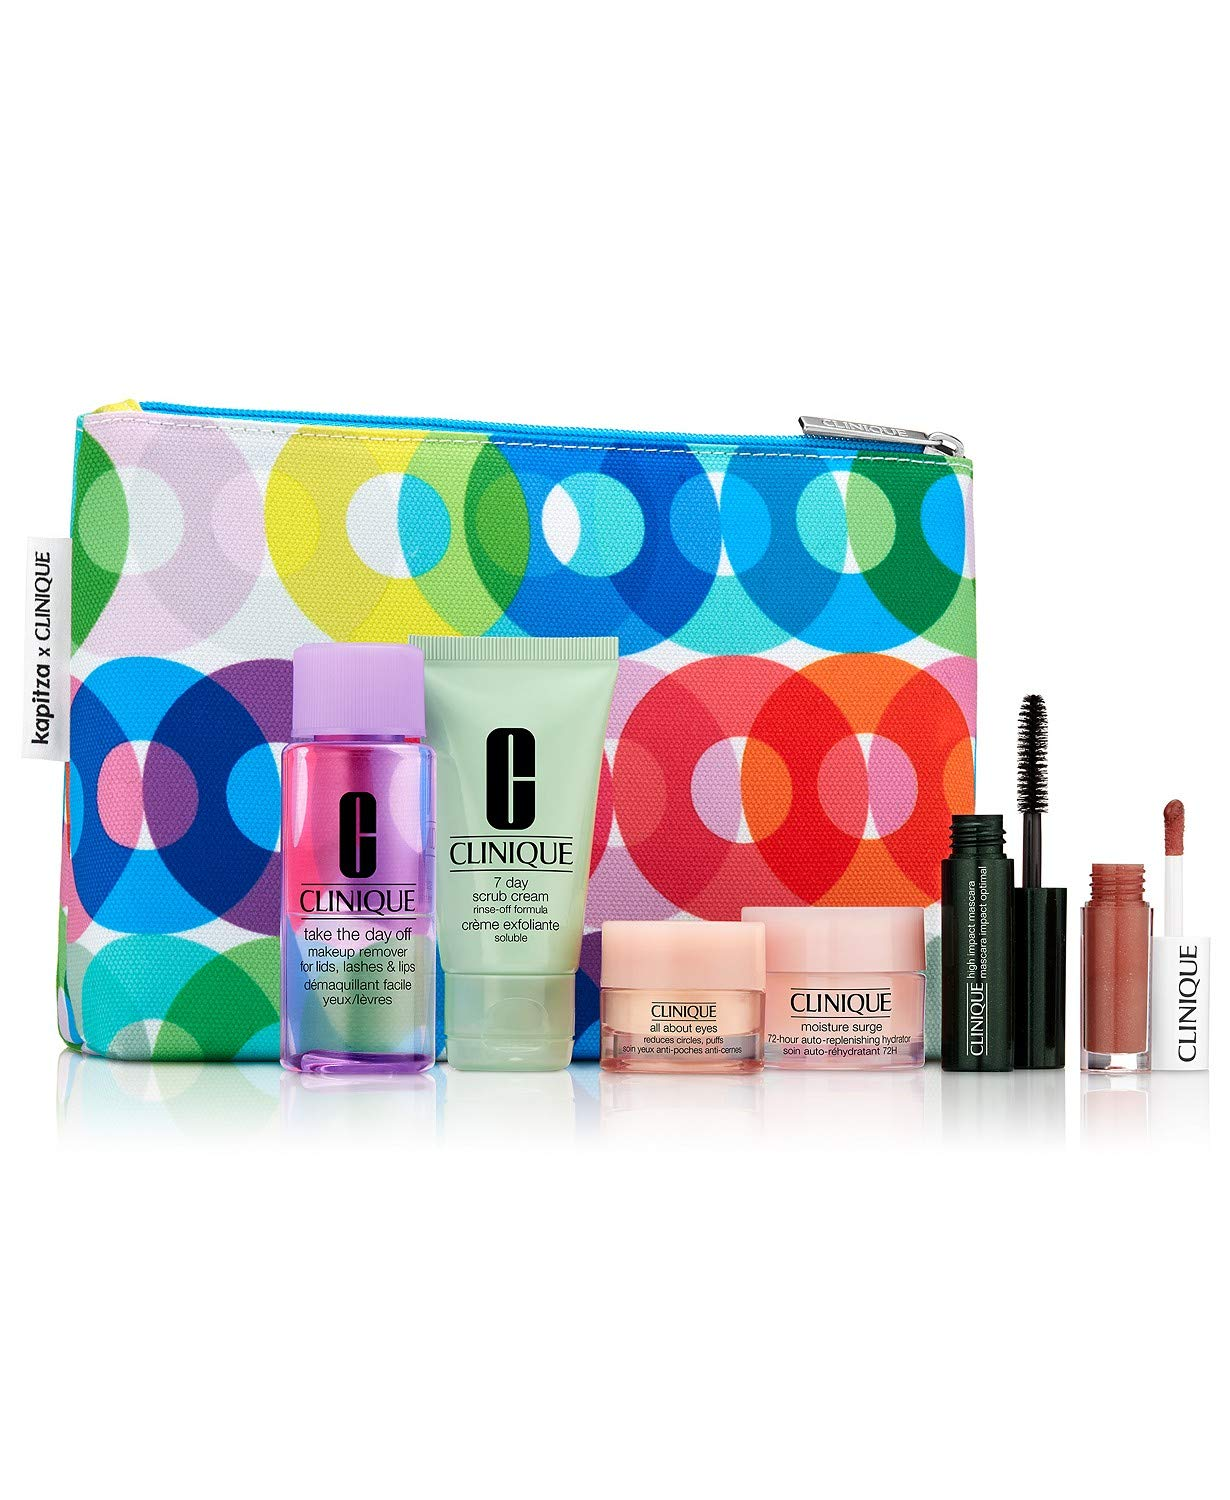 Clinique 7pc Make up & Skin Care Gift Set Bold Pops/punch New&sealed! $70 Value!